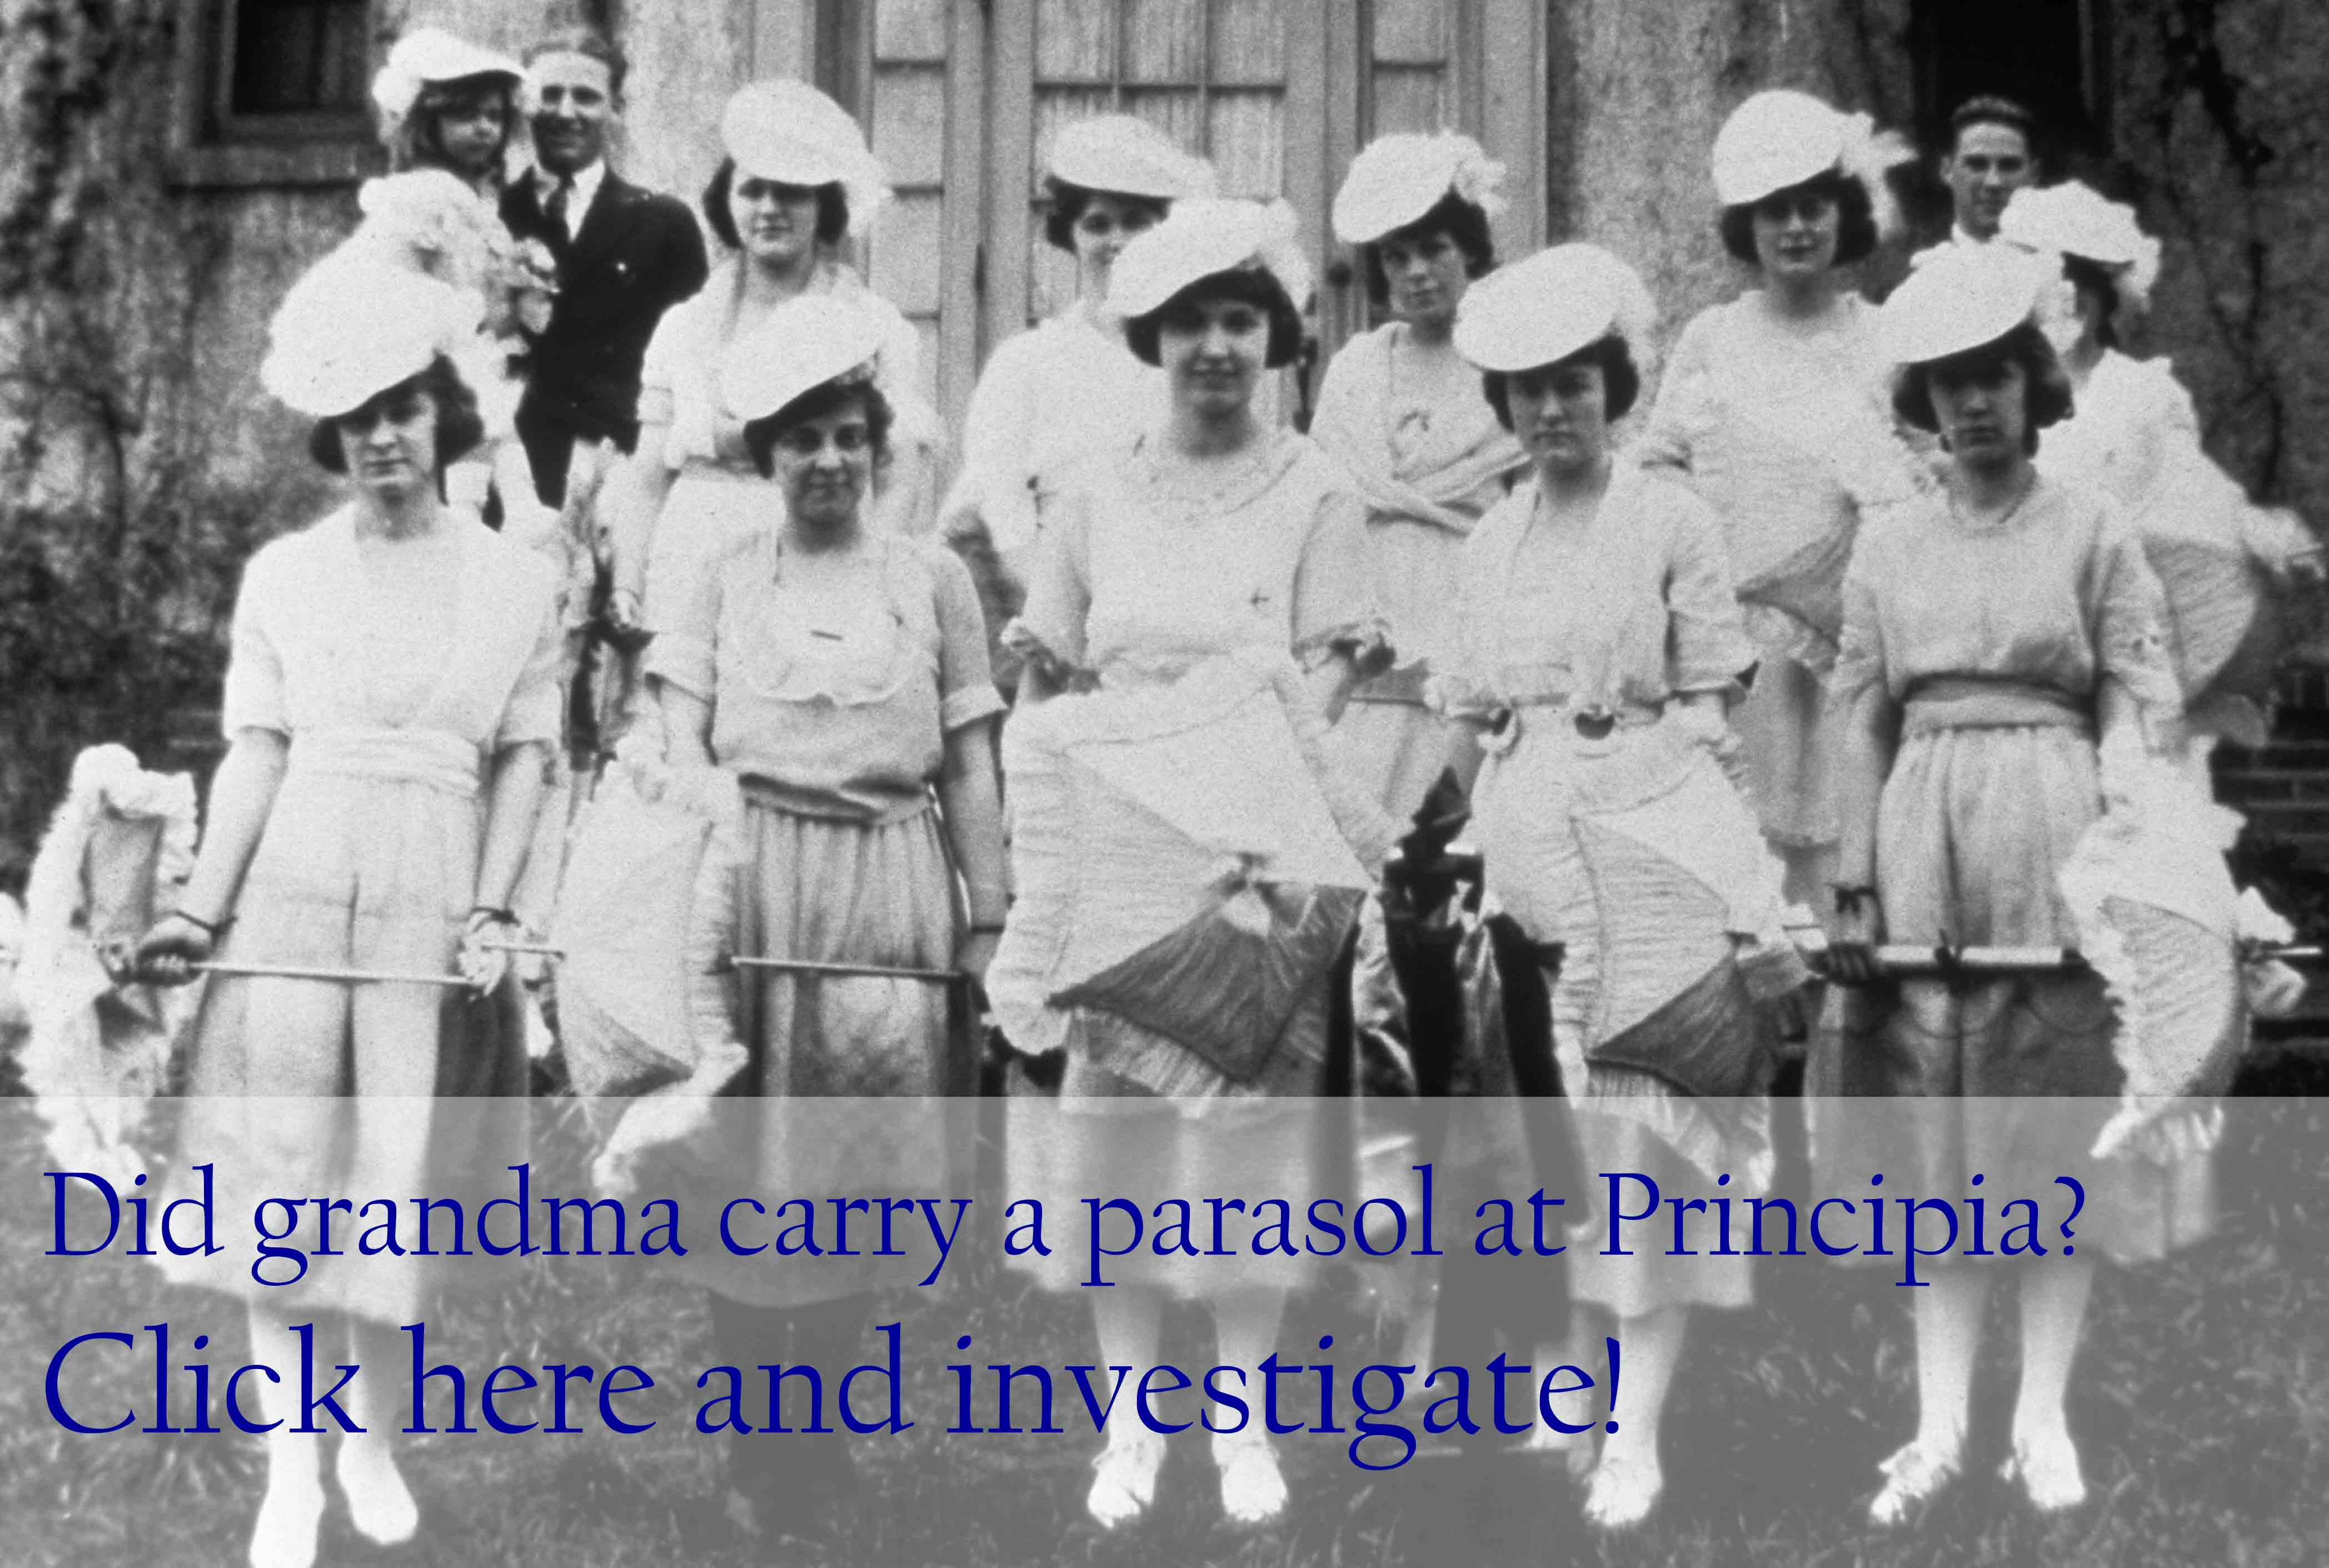 Principia women students with parasol